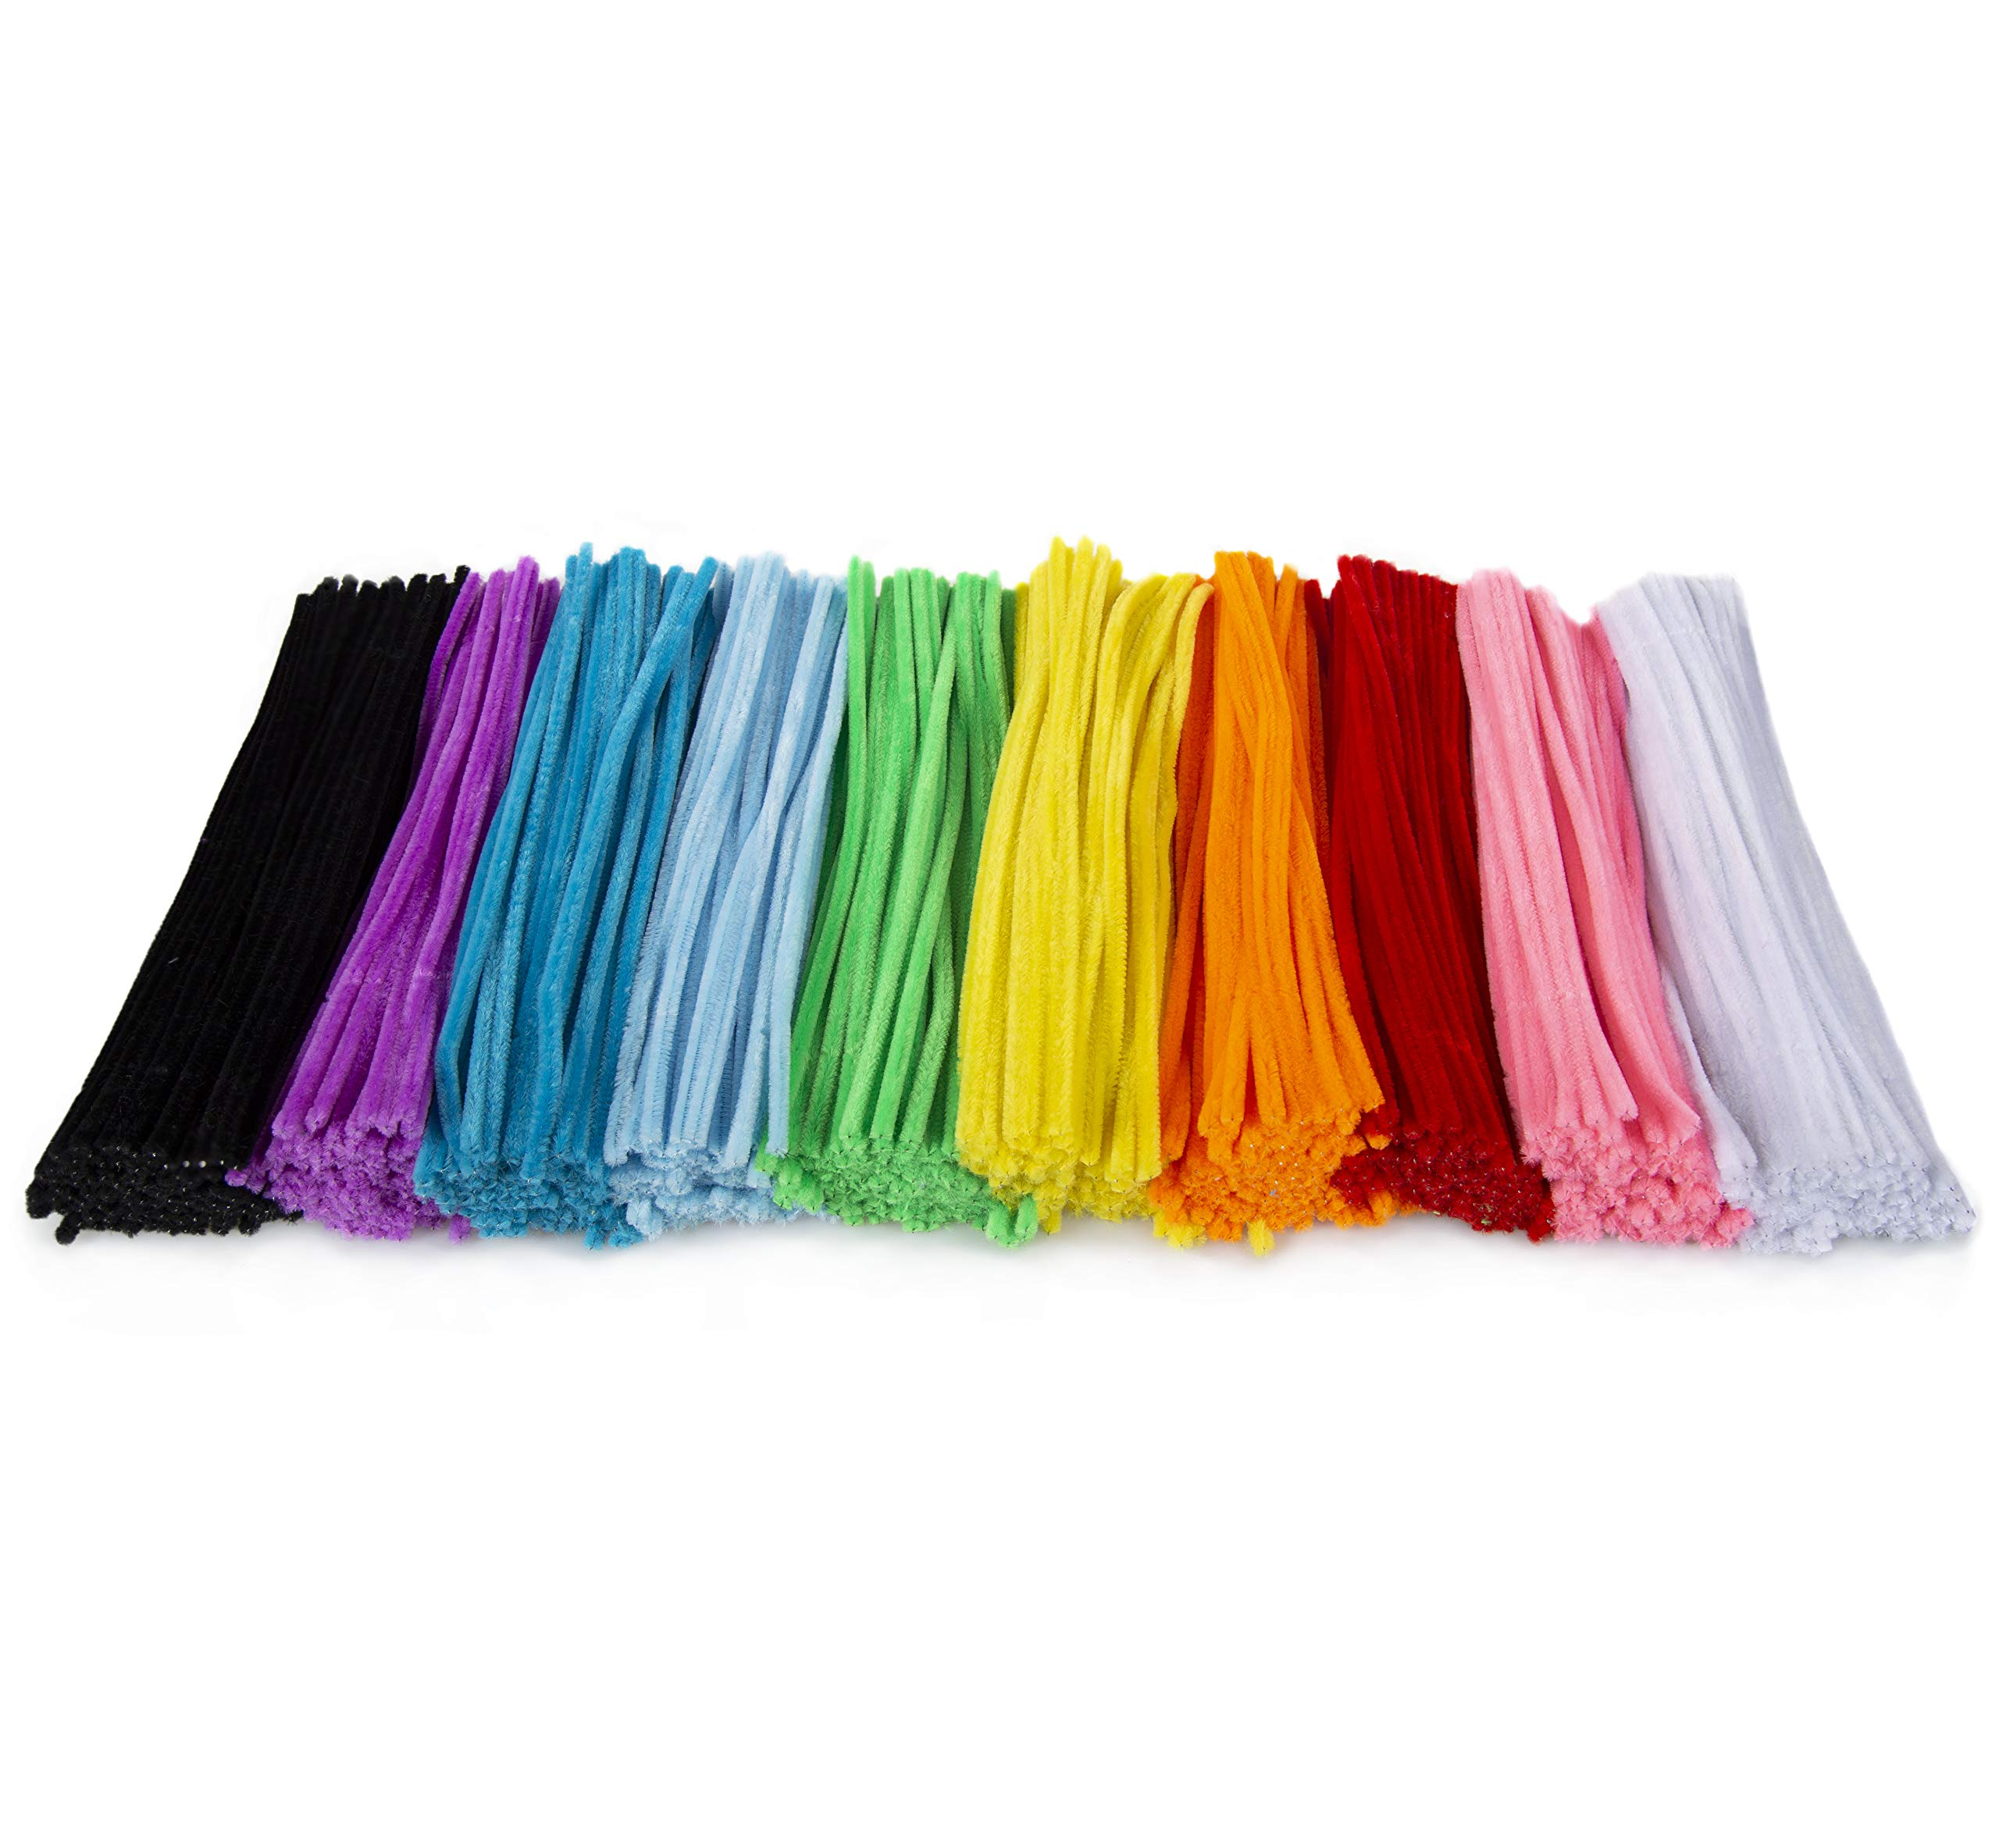 Zees 1,000 Pipe Cleaners in 10 Assorted Colors, Value Pack of Chenille Stems for DIY Arts and Craft Projects and Decorations - 6mm x 12 Inches by zees products (Image #5)